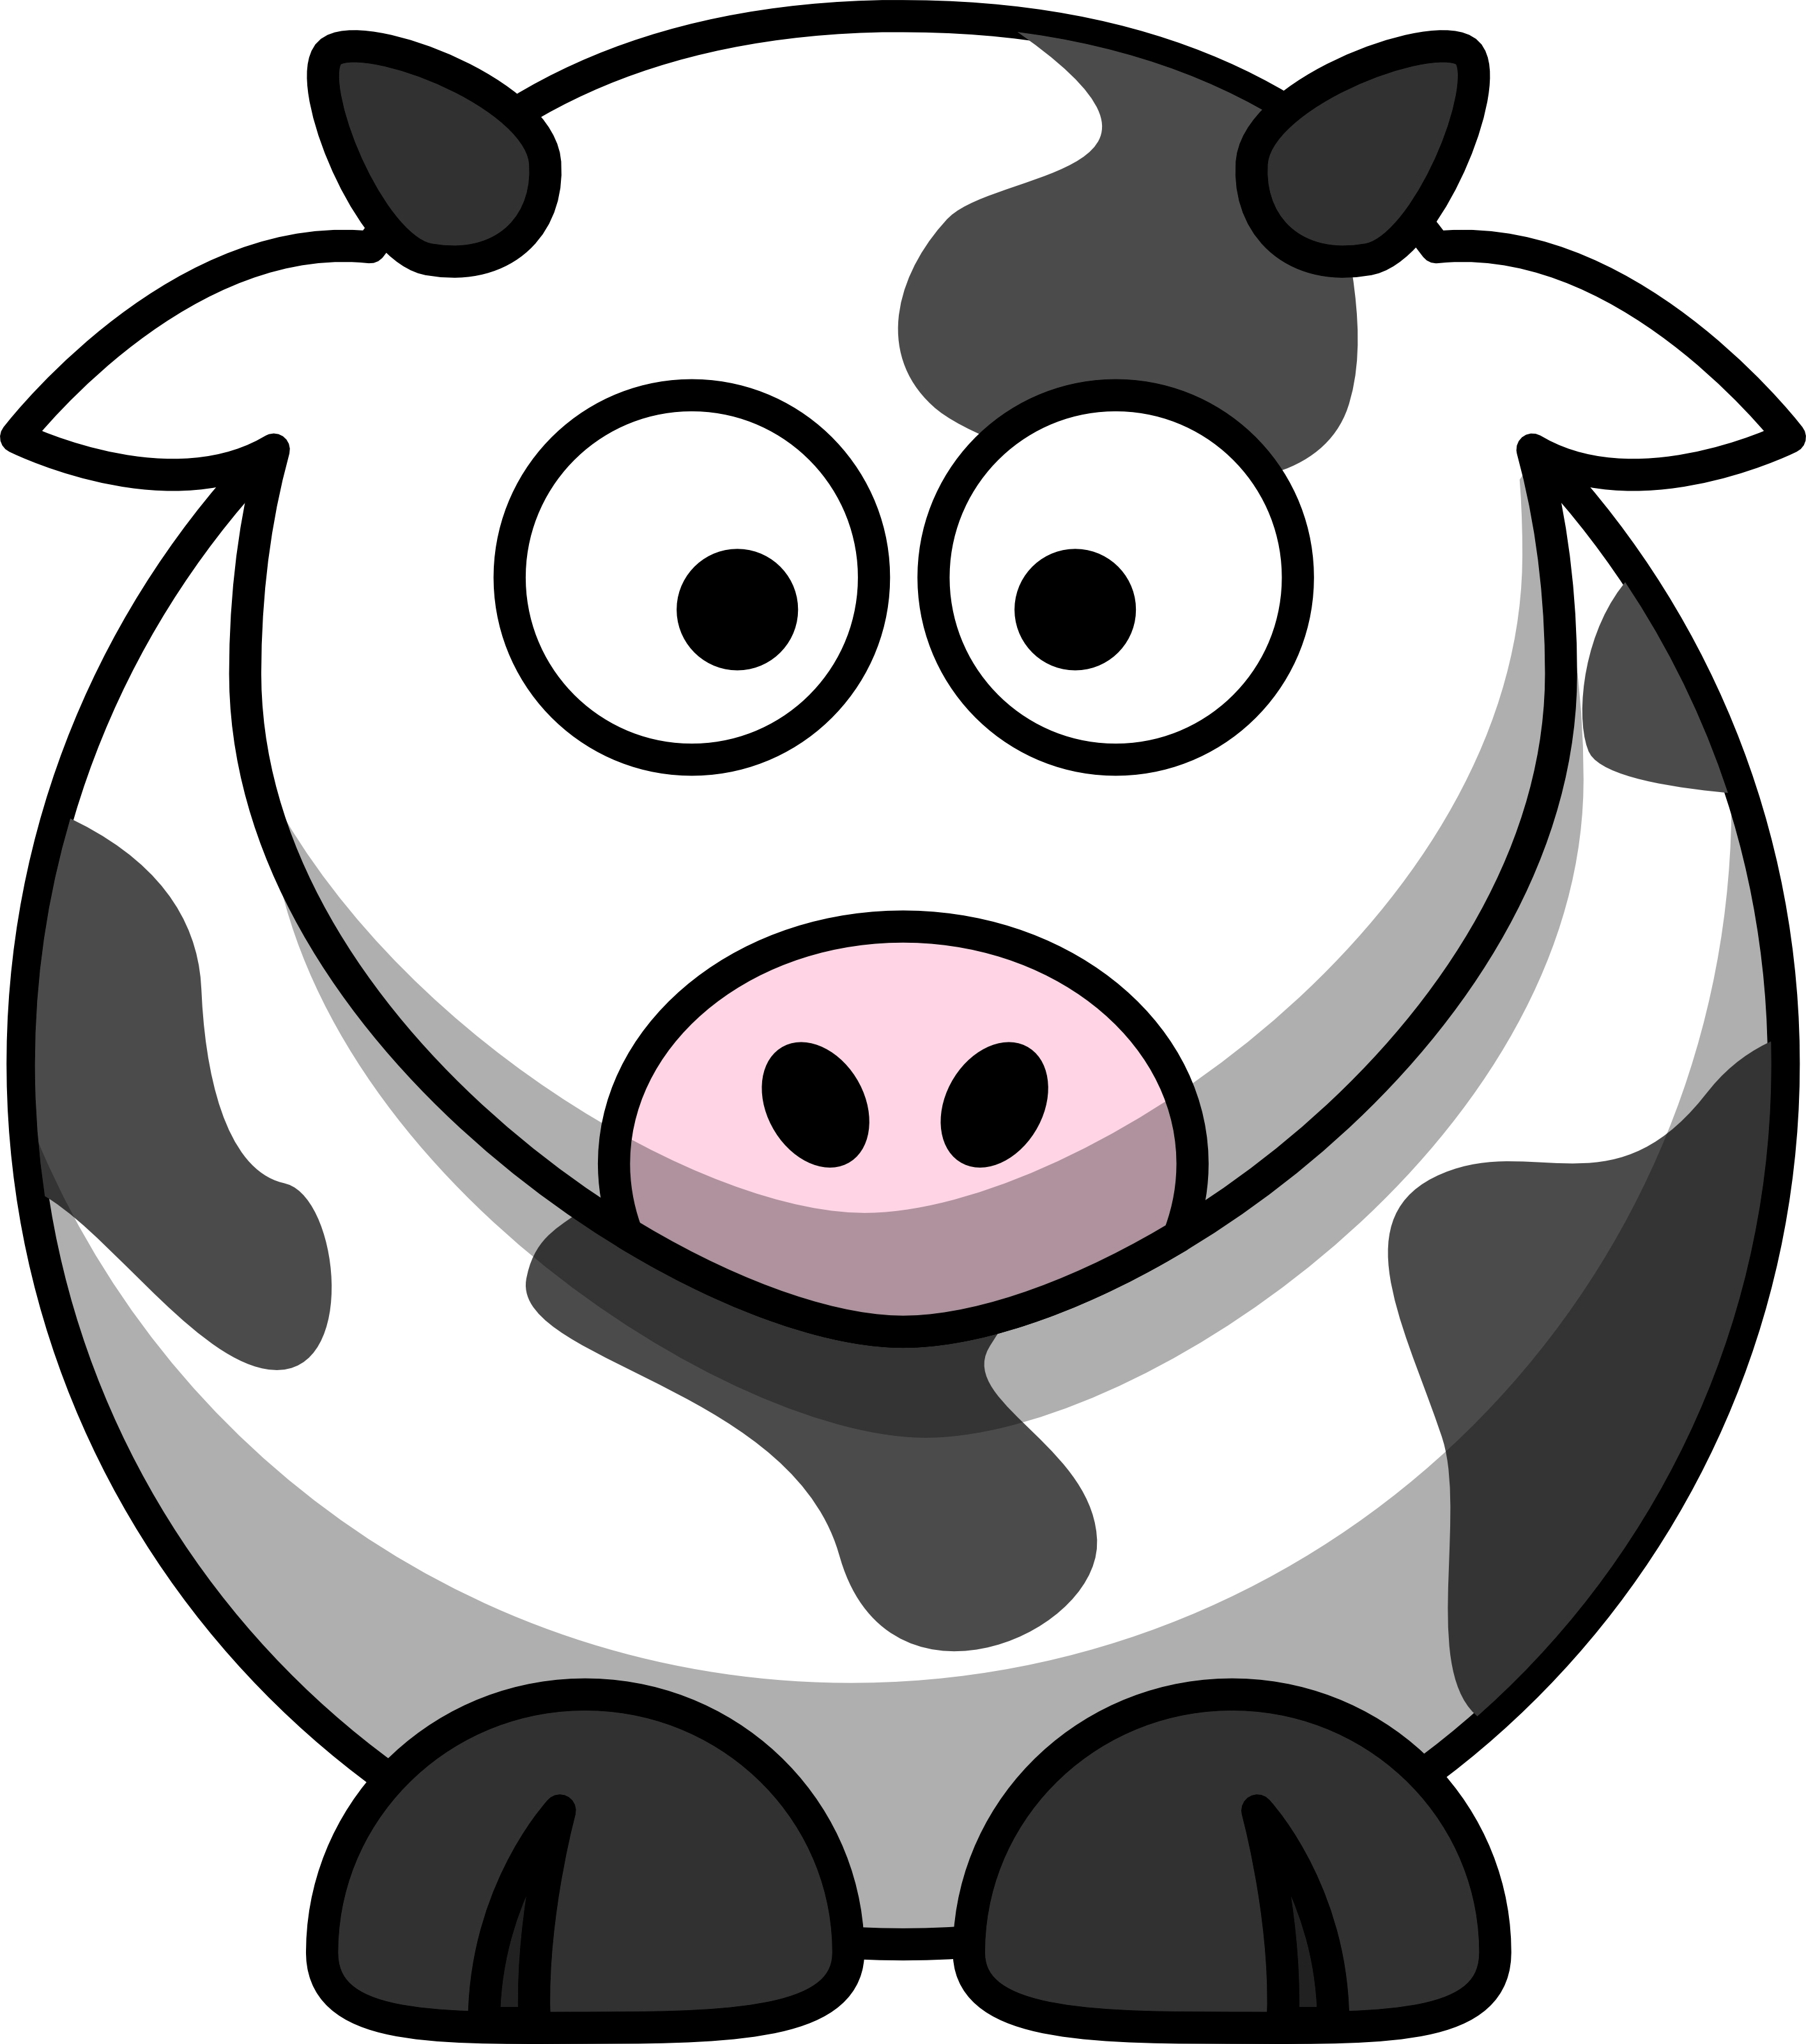 Clipart - Pig, Cow-Clipart - Pig, Cow-6